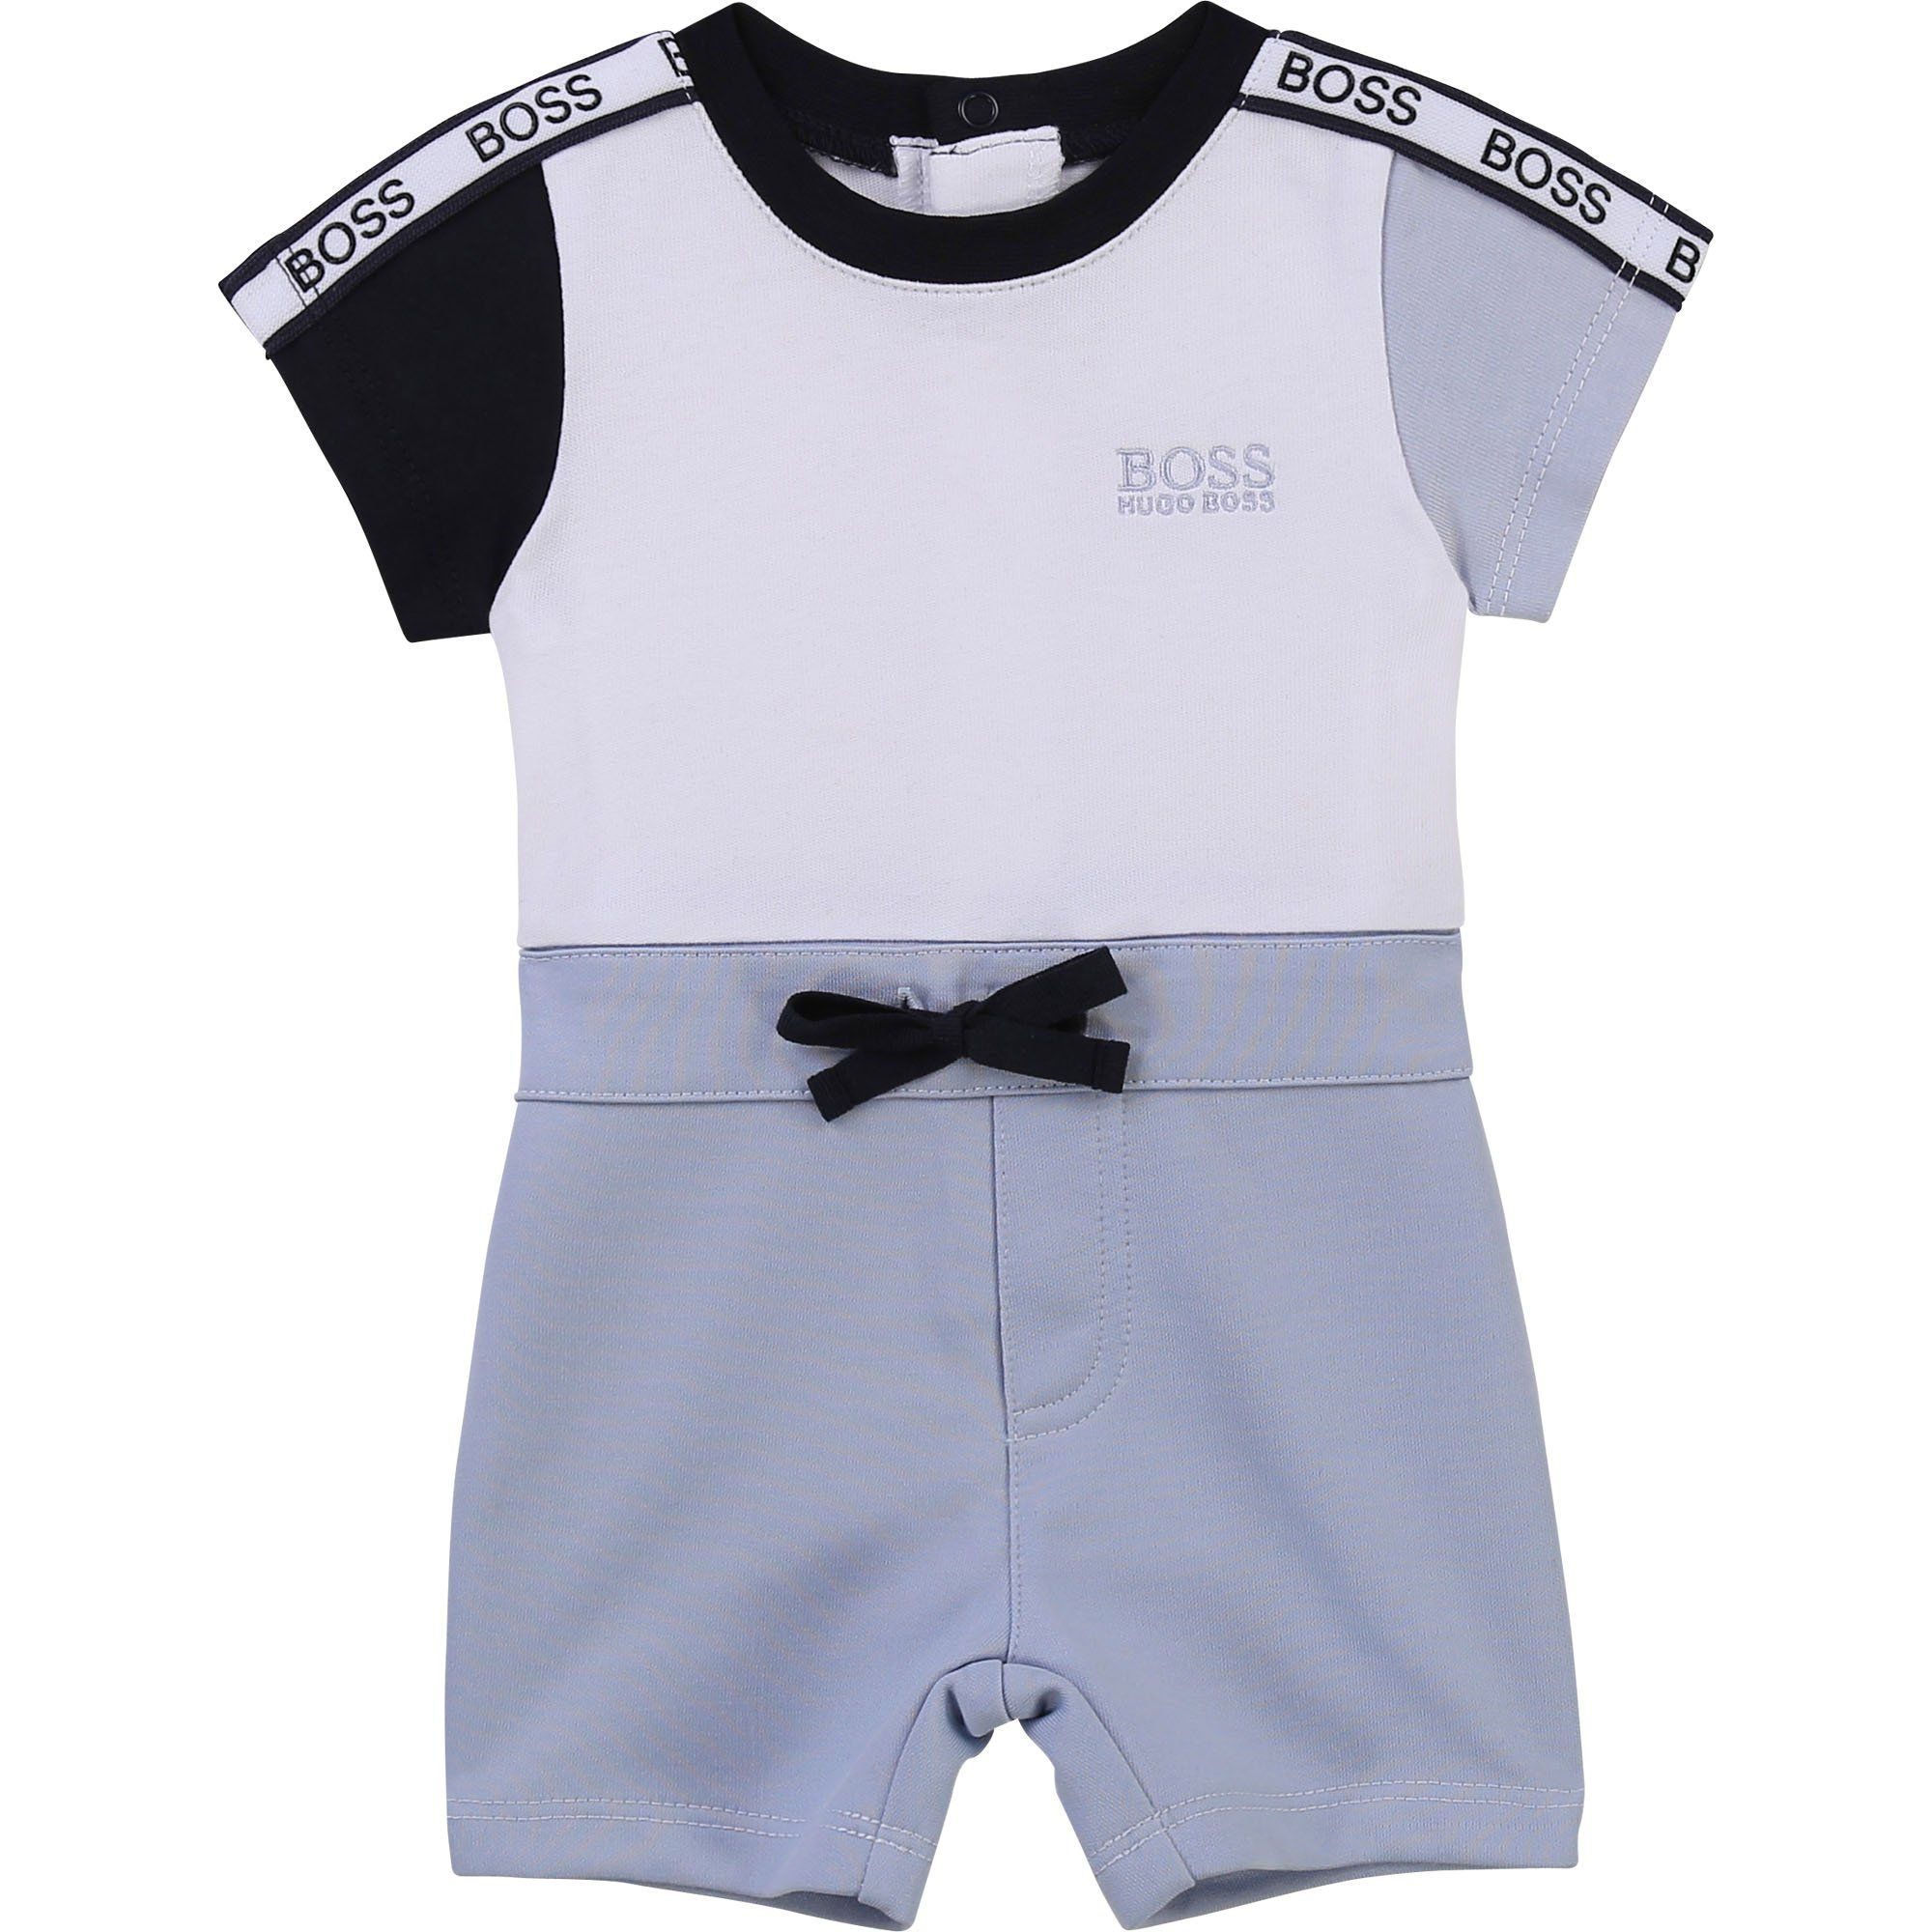 Boss Romper Outfit 6-9 months